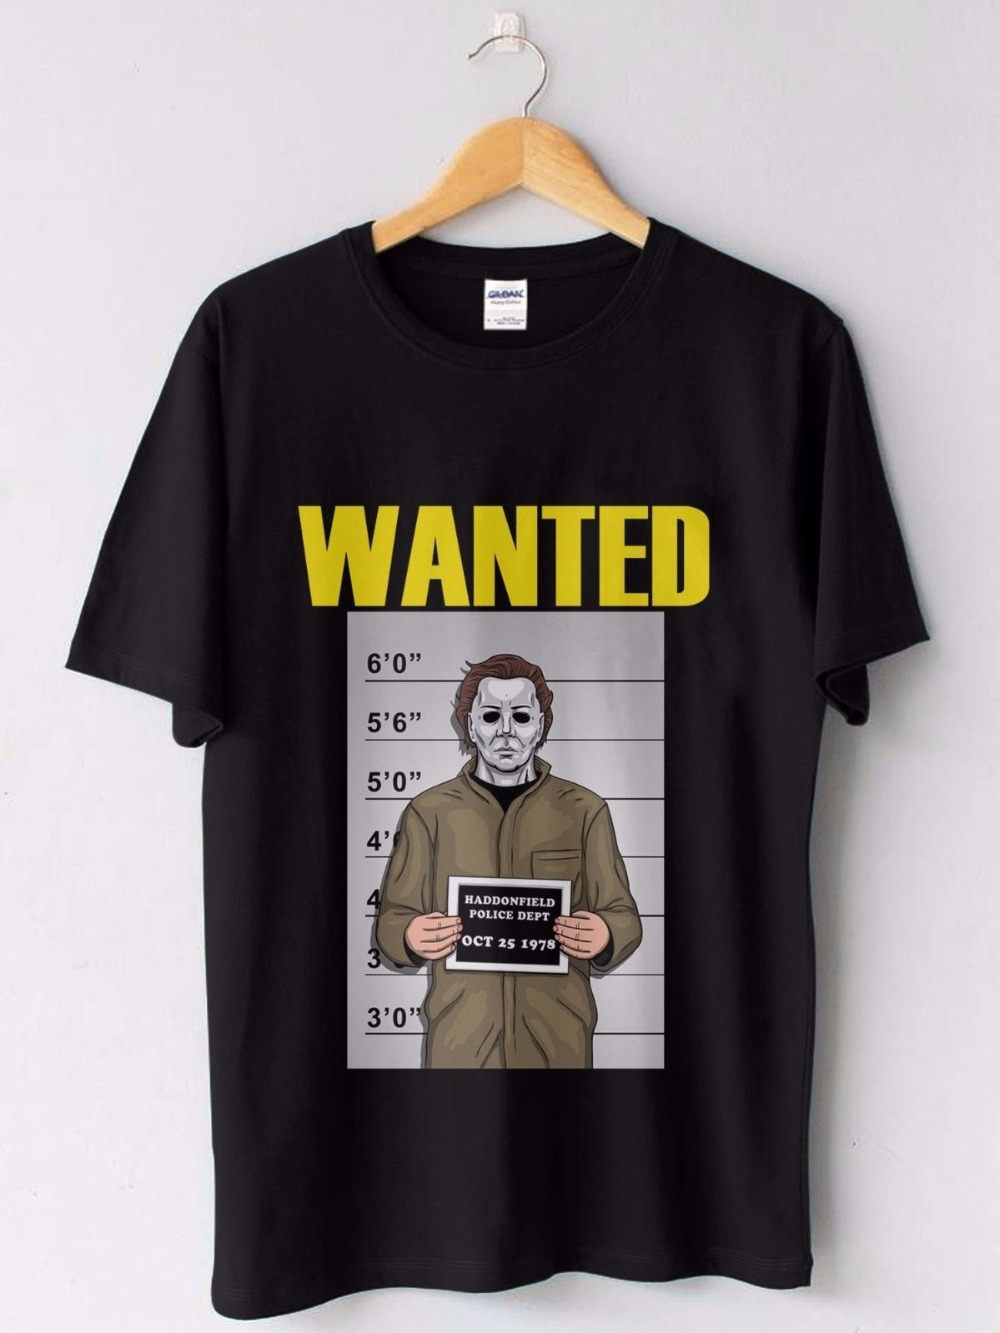 Hipster Vogue Wanted Michael Myers Custom Mens Tshirt Fashion Cotton Tops Black Size S-3XL